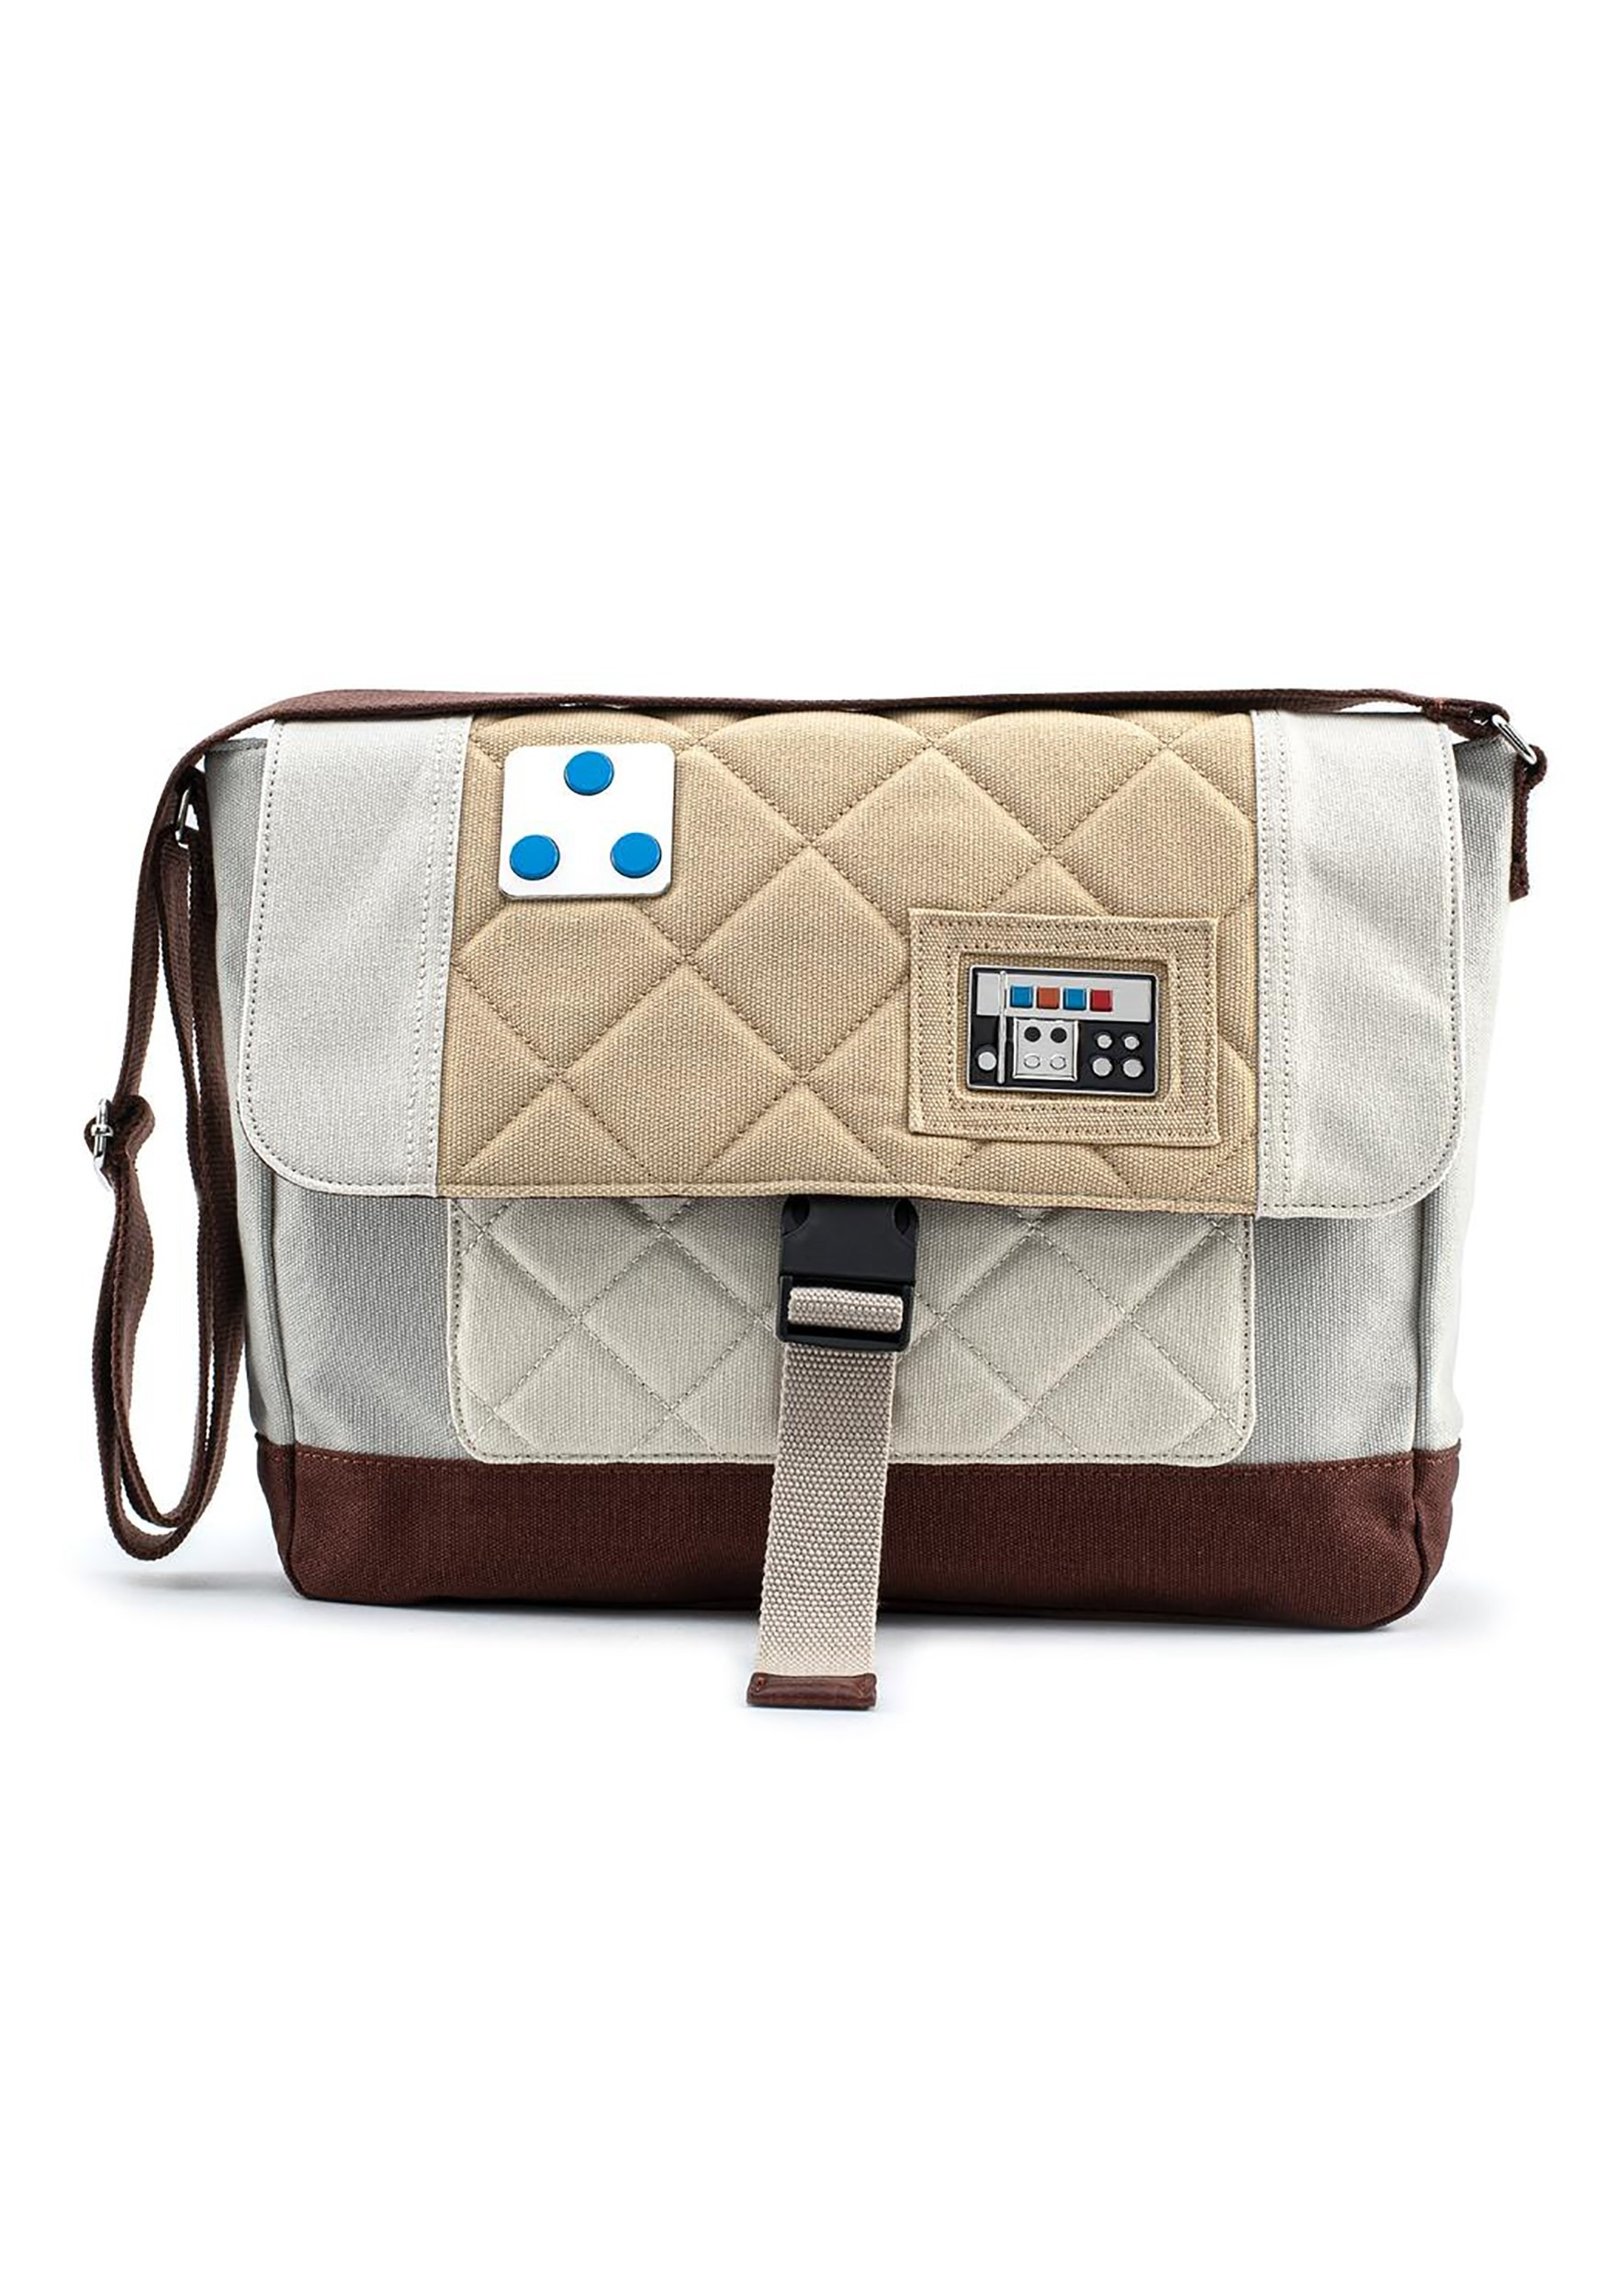 Empire 40th Luke Outfit Satchel Loungefly